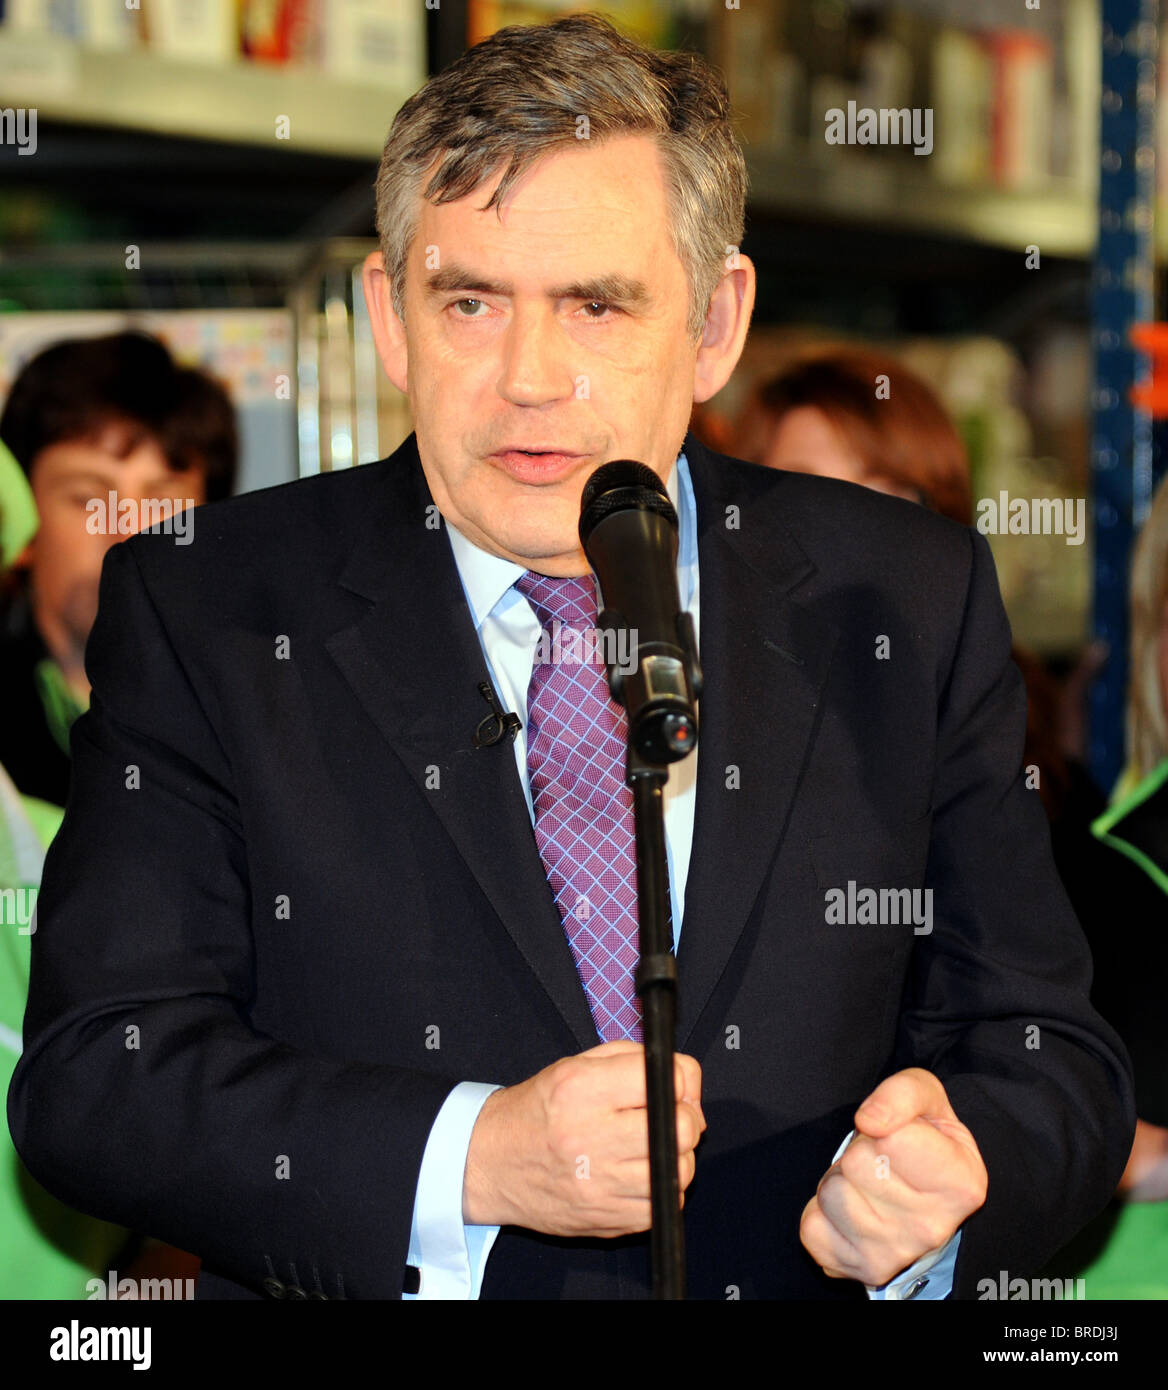 Gordon Brown MP, former 'Prime Minister' of Great Britain, UK - Stock Image